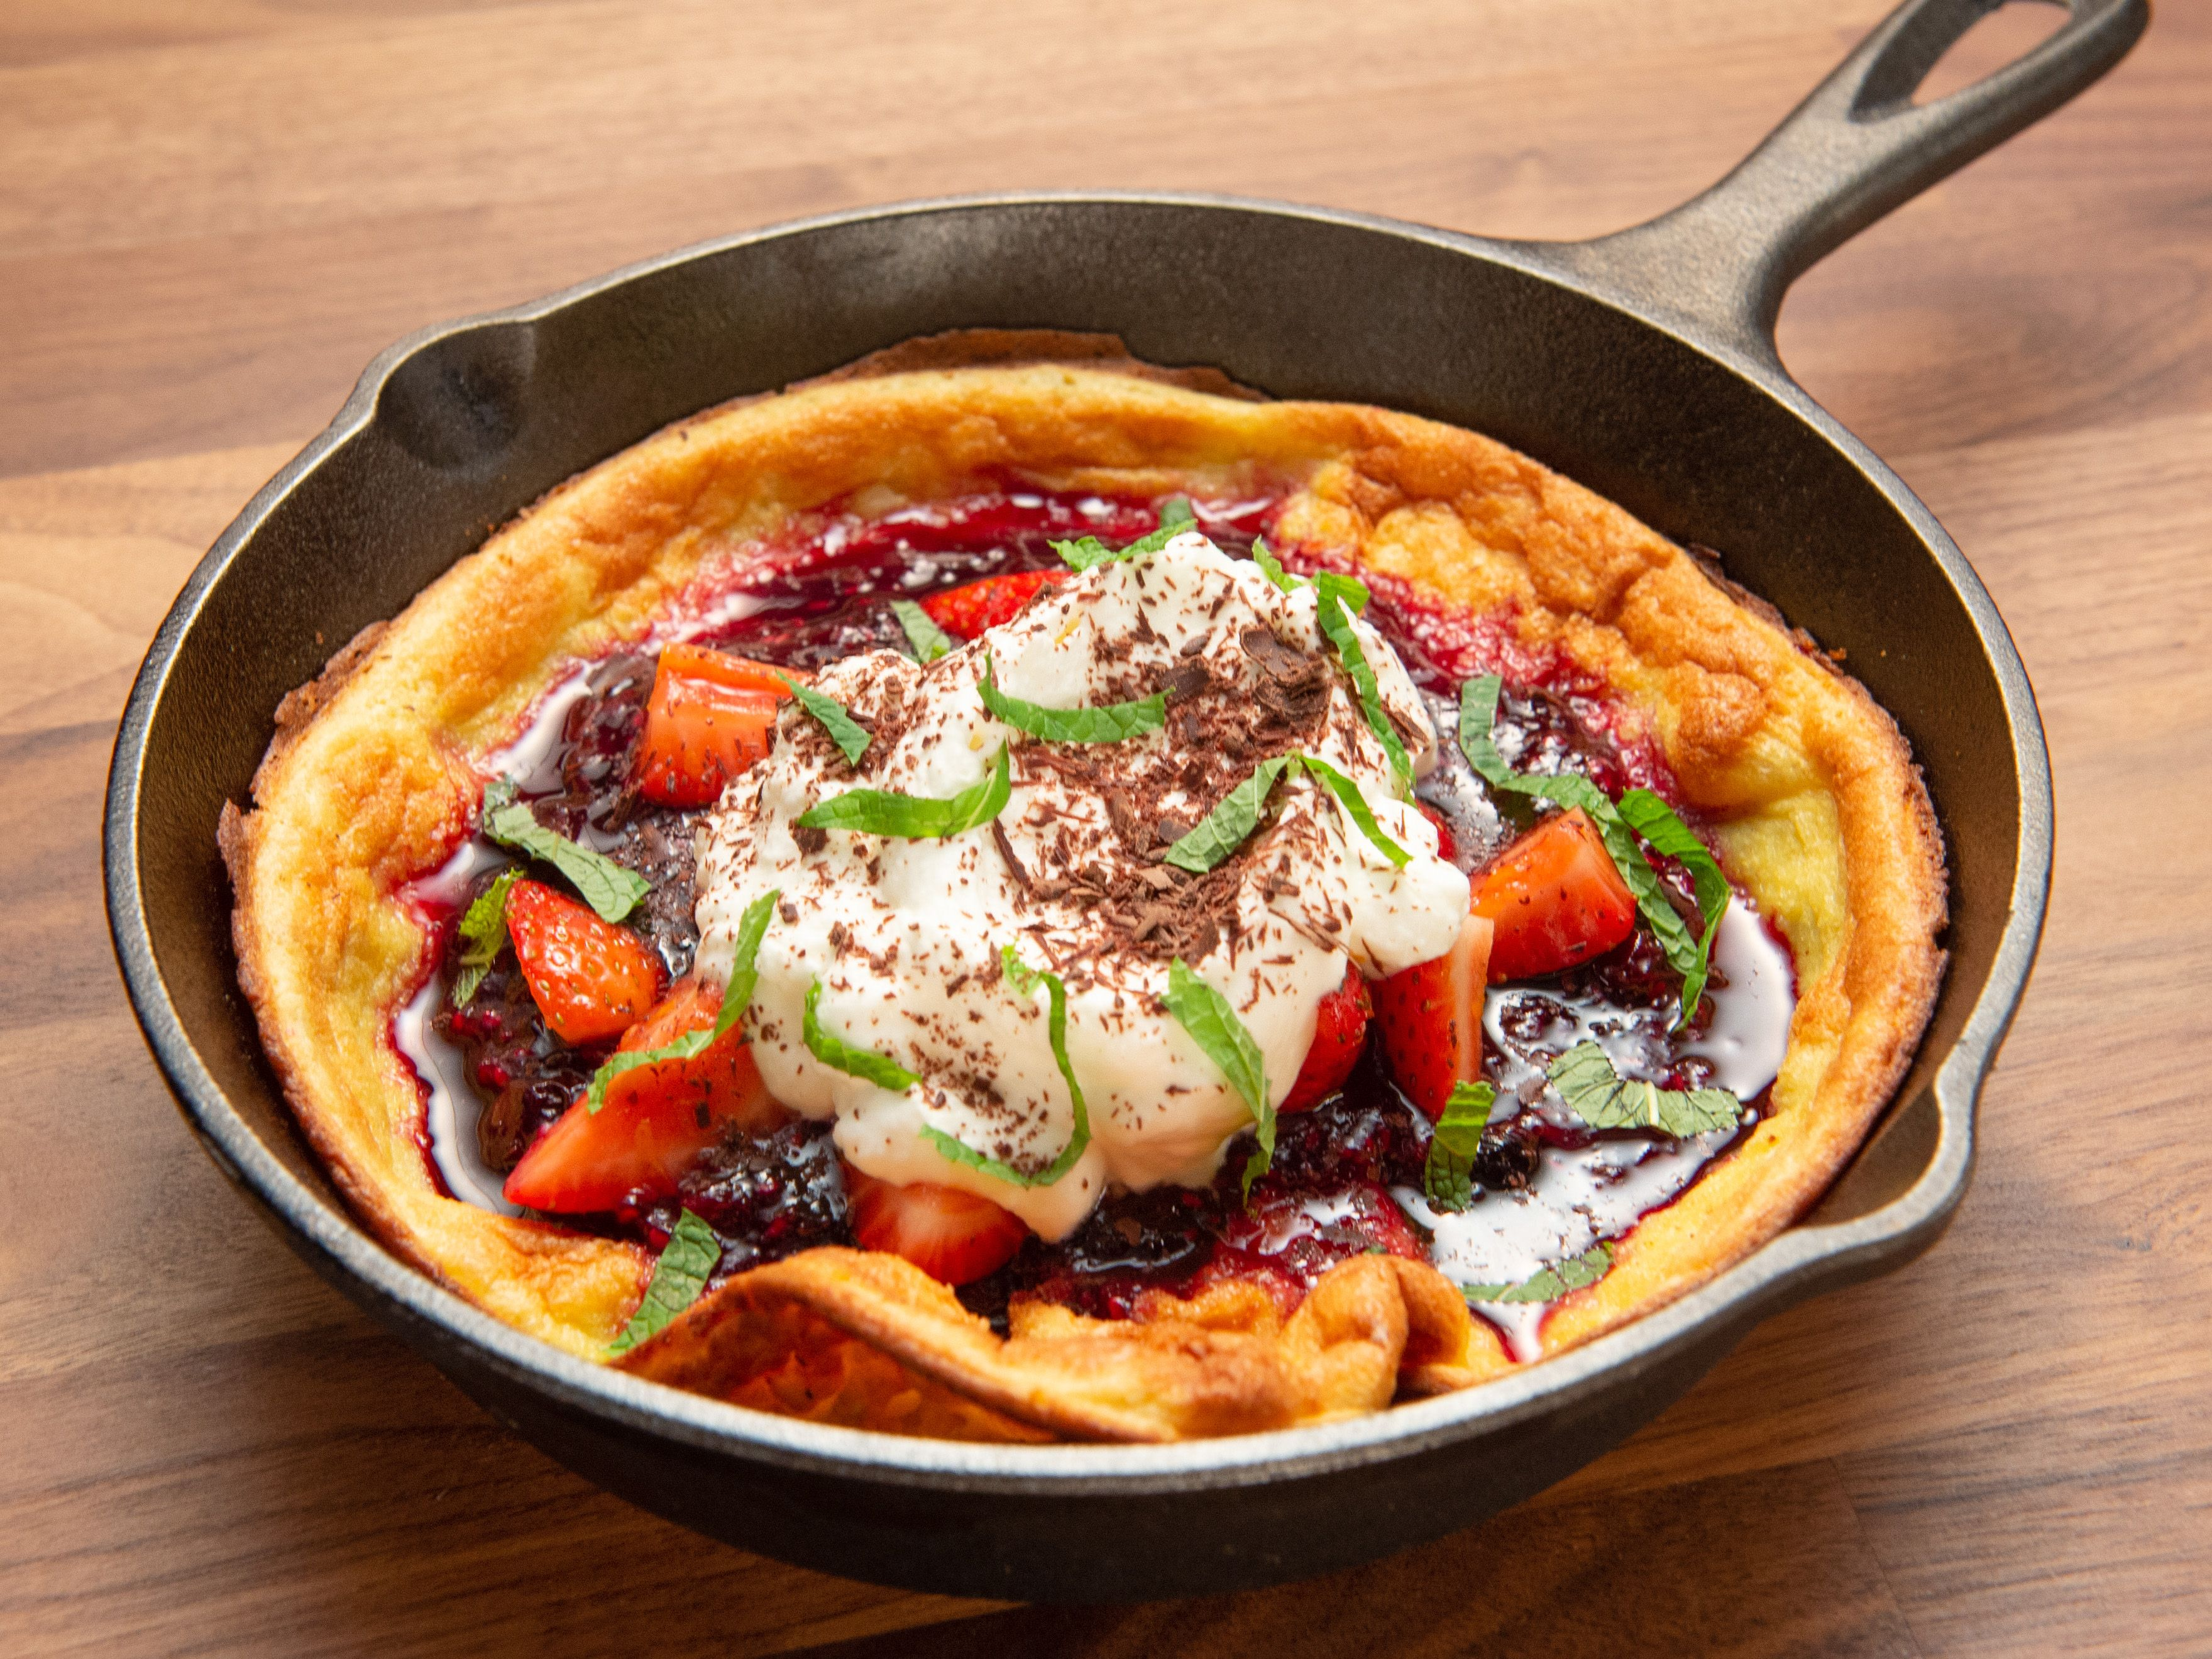 Dutch Baby with Berry Compote | Recipe | Worst cooks, Food ...